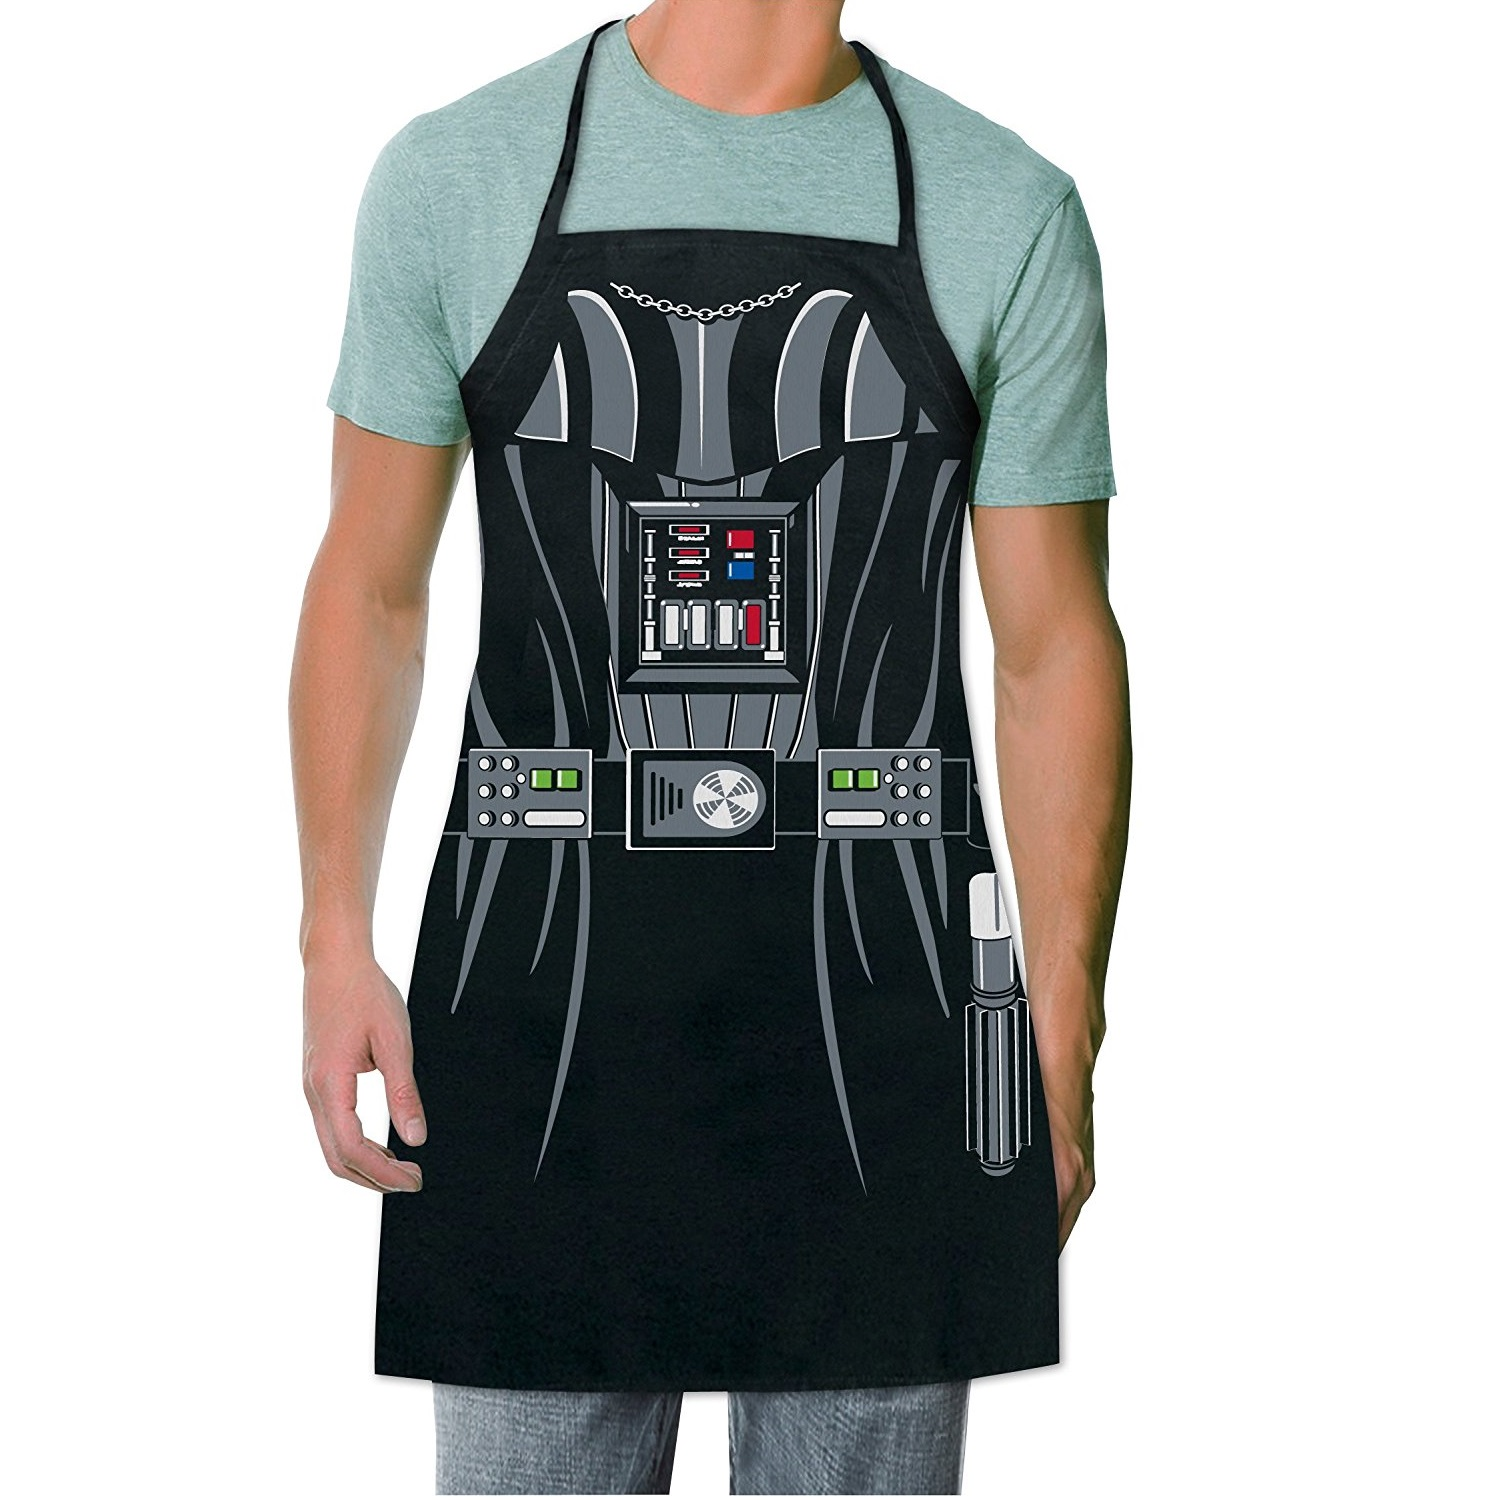 ICUP Character Cooking Apron